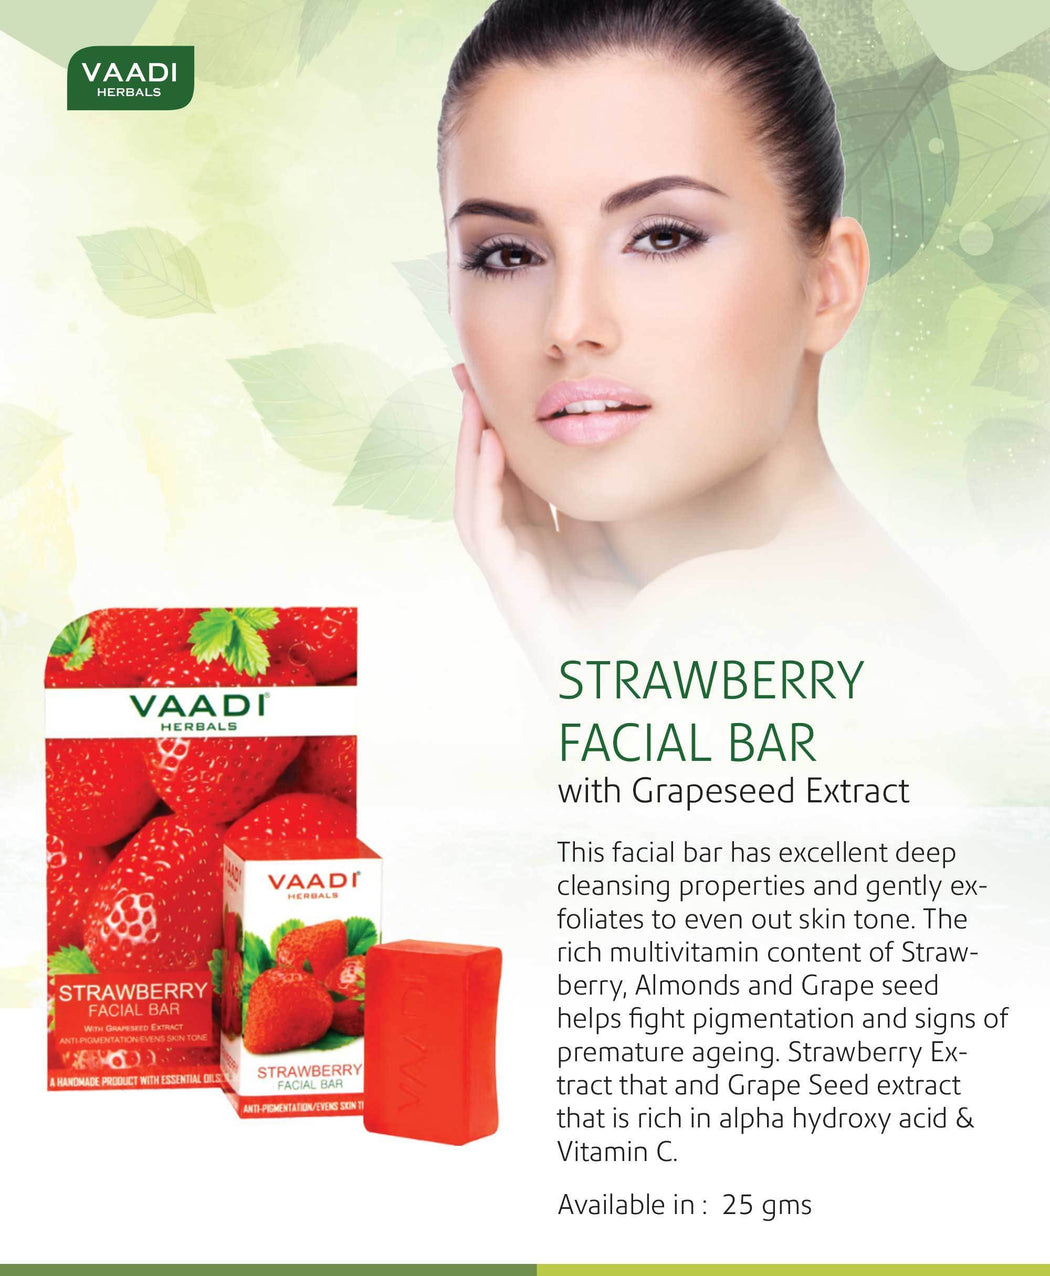 Organic Strawberry Facial Bar with Grapeseed Extract - Anti Ageing - Reduces Pigmentation (6 x 25 gms/0.9 oz)